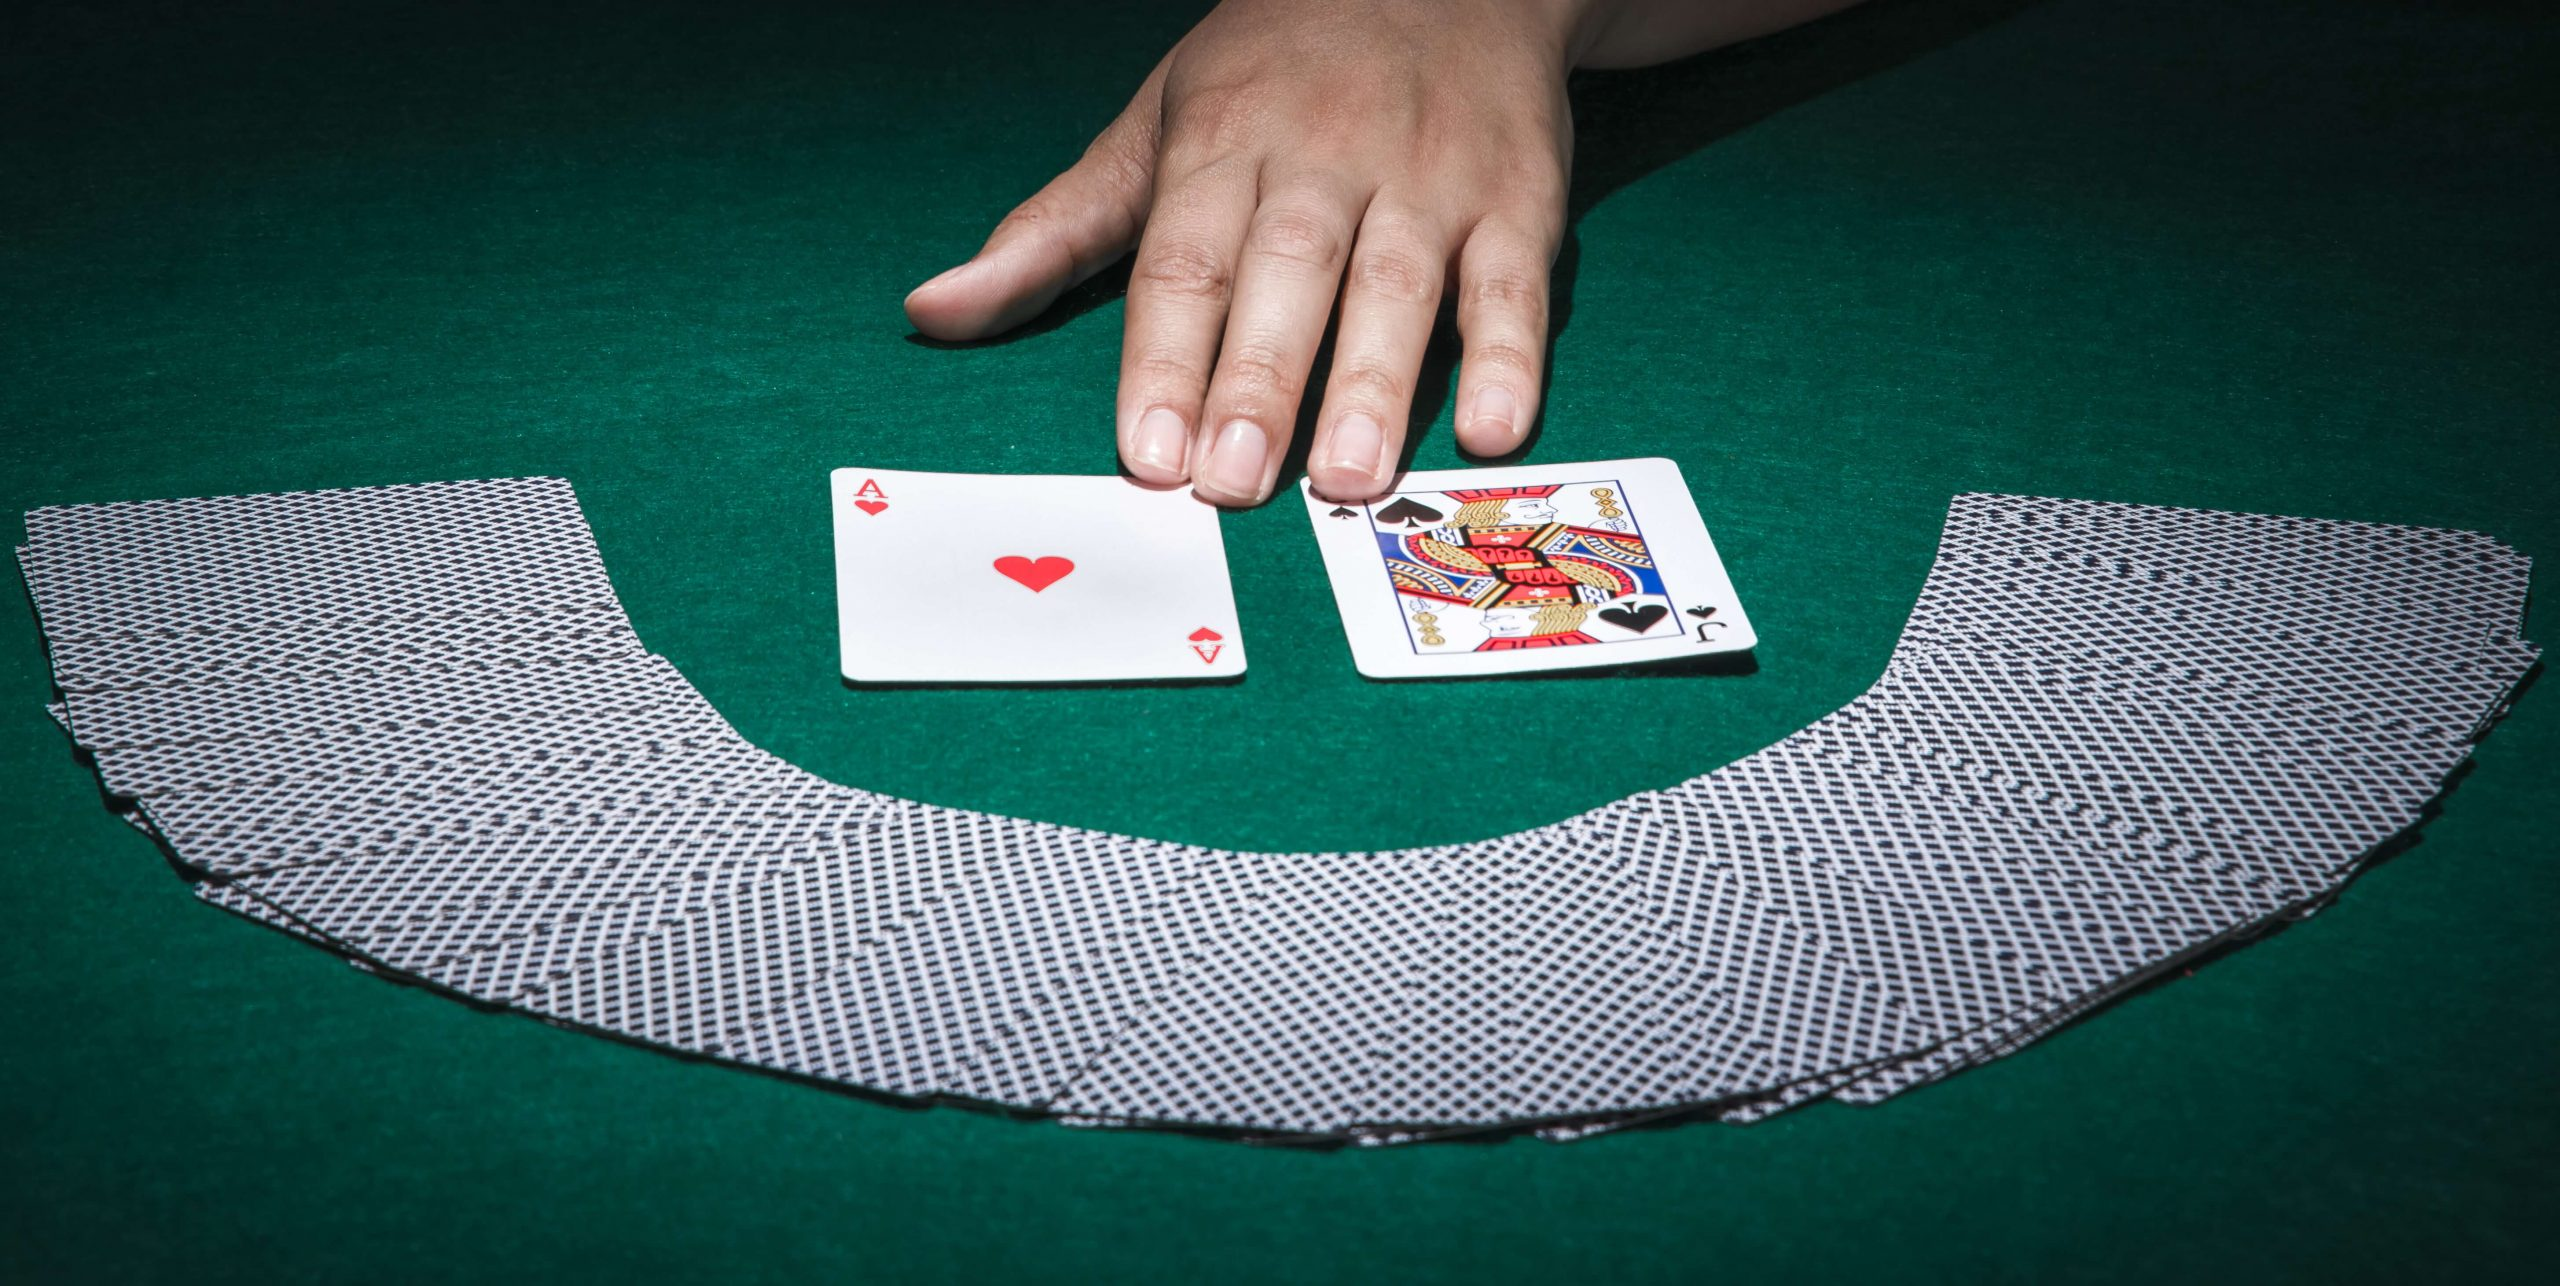 hand_on_cards